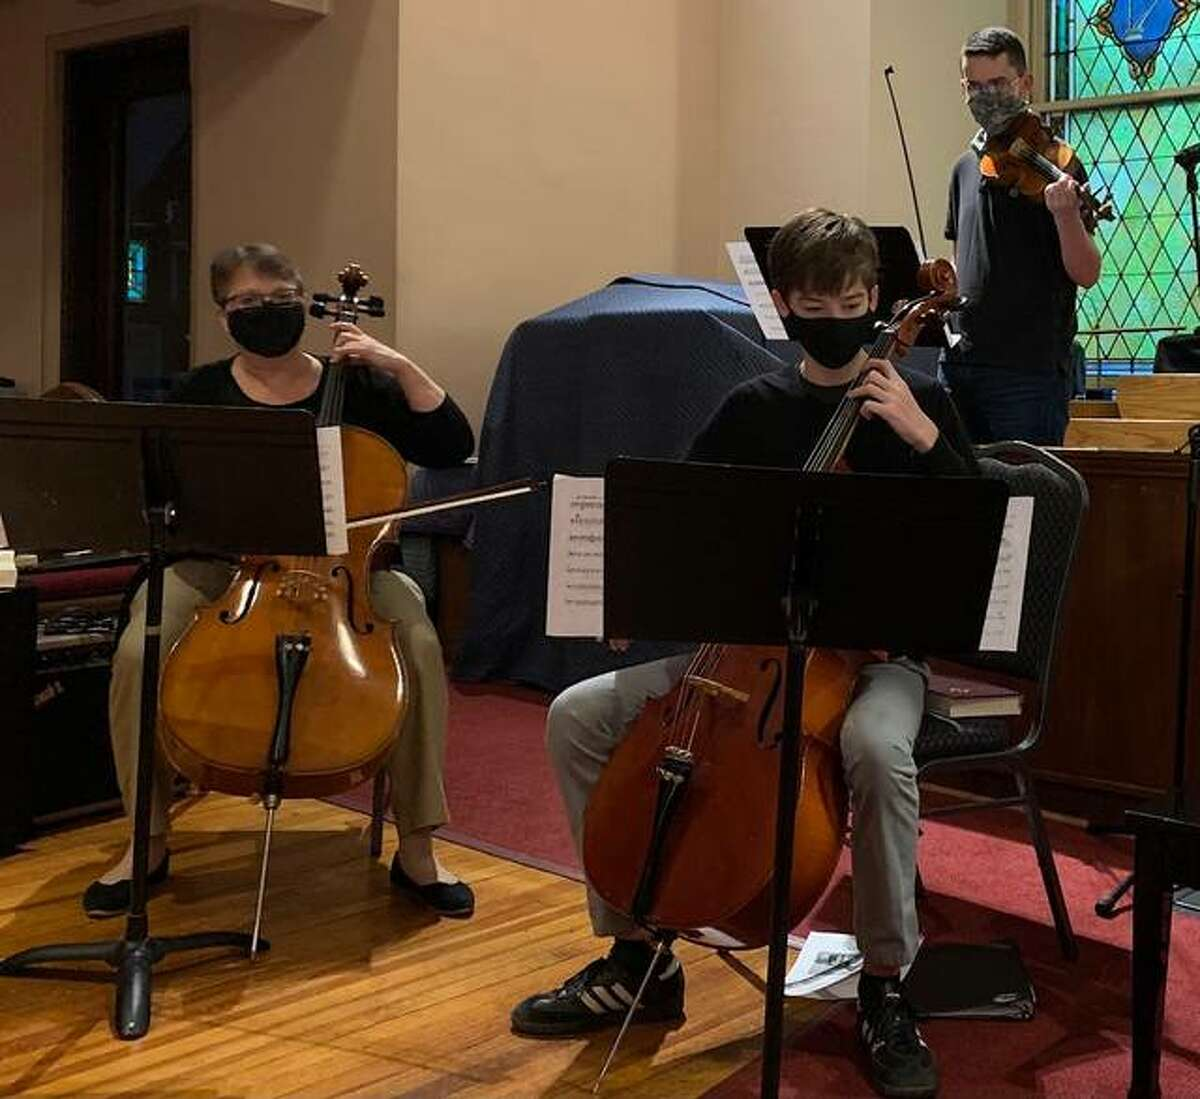 For the third straight year running Metro-East Lutheran High School's orchestra has claimed first place in the Illinois High School Association's solo and ensemble competition.